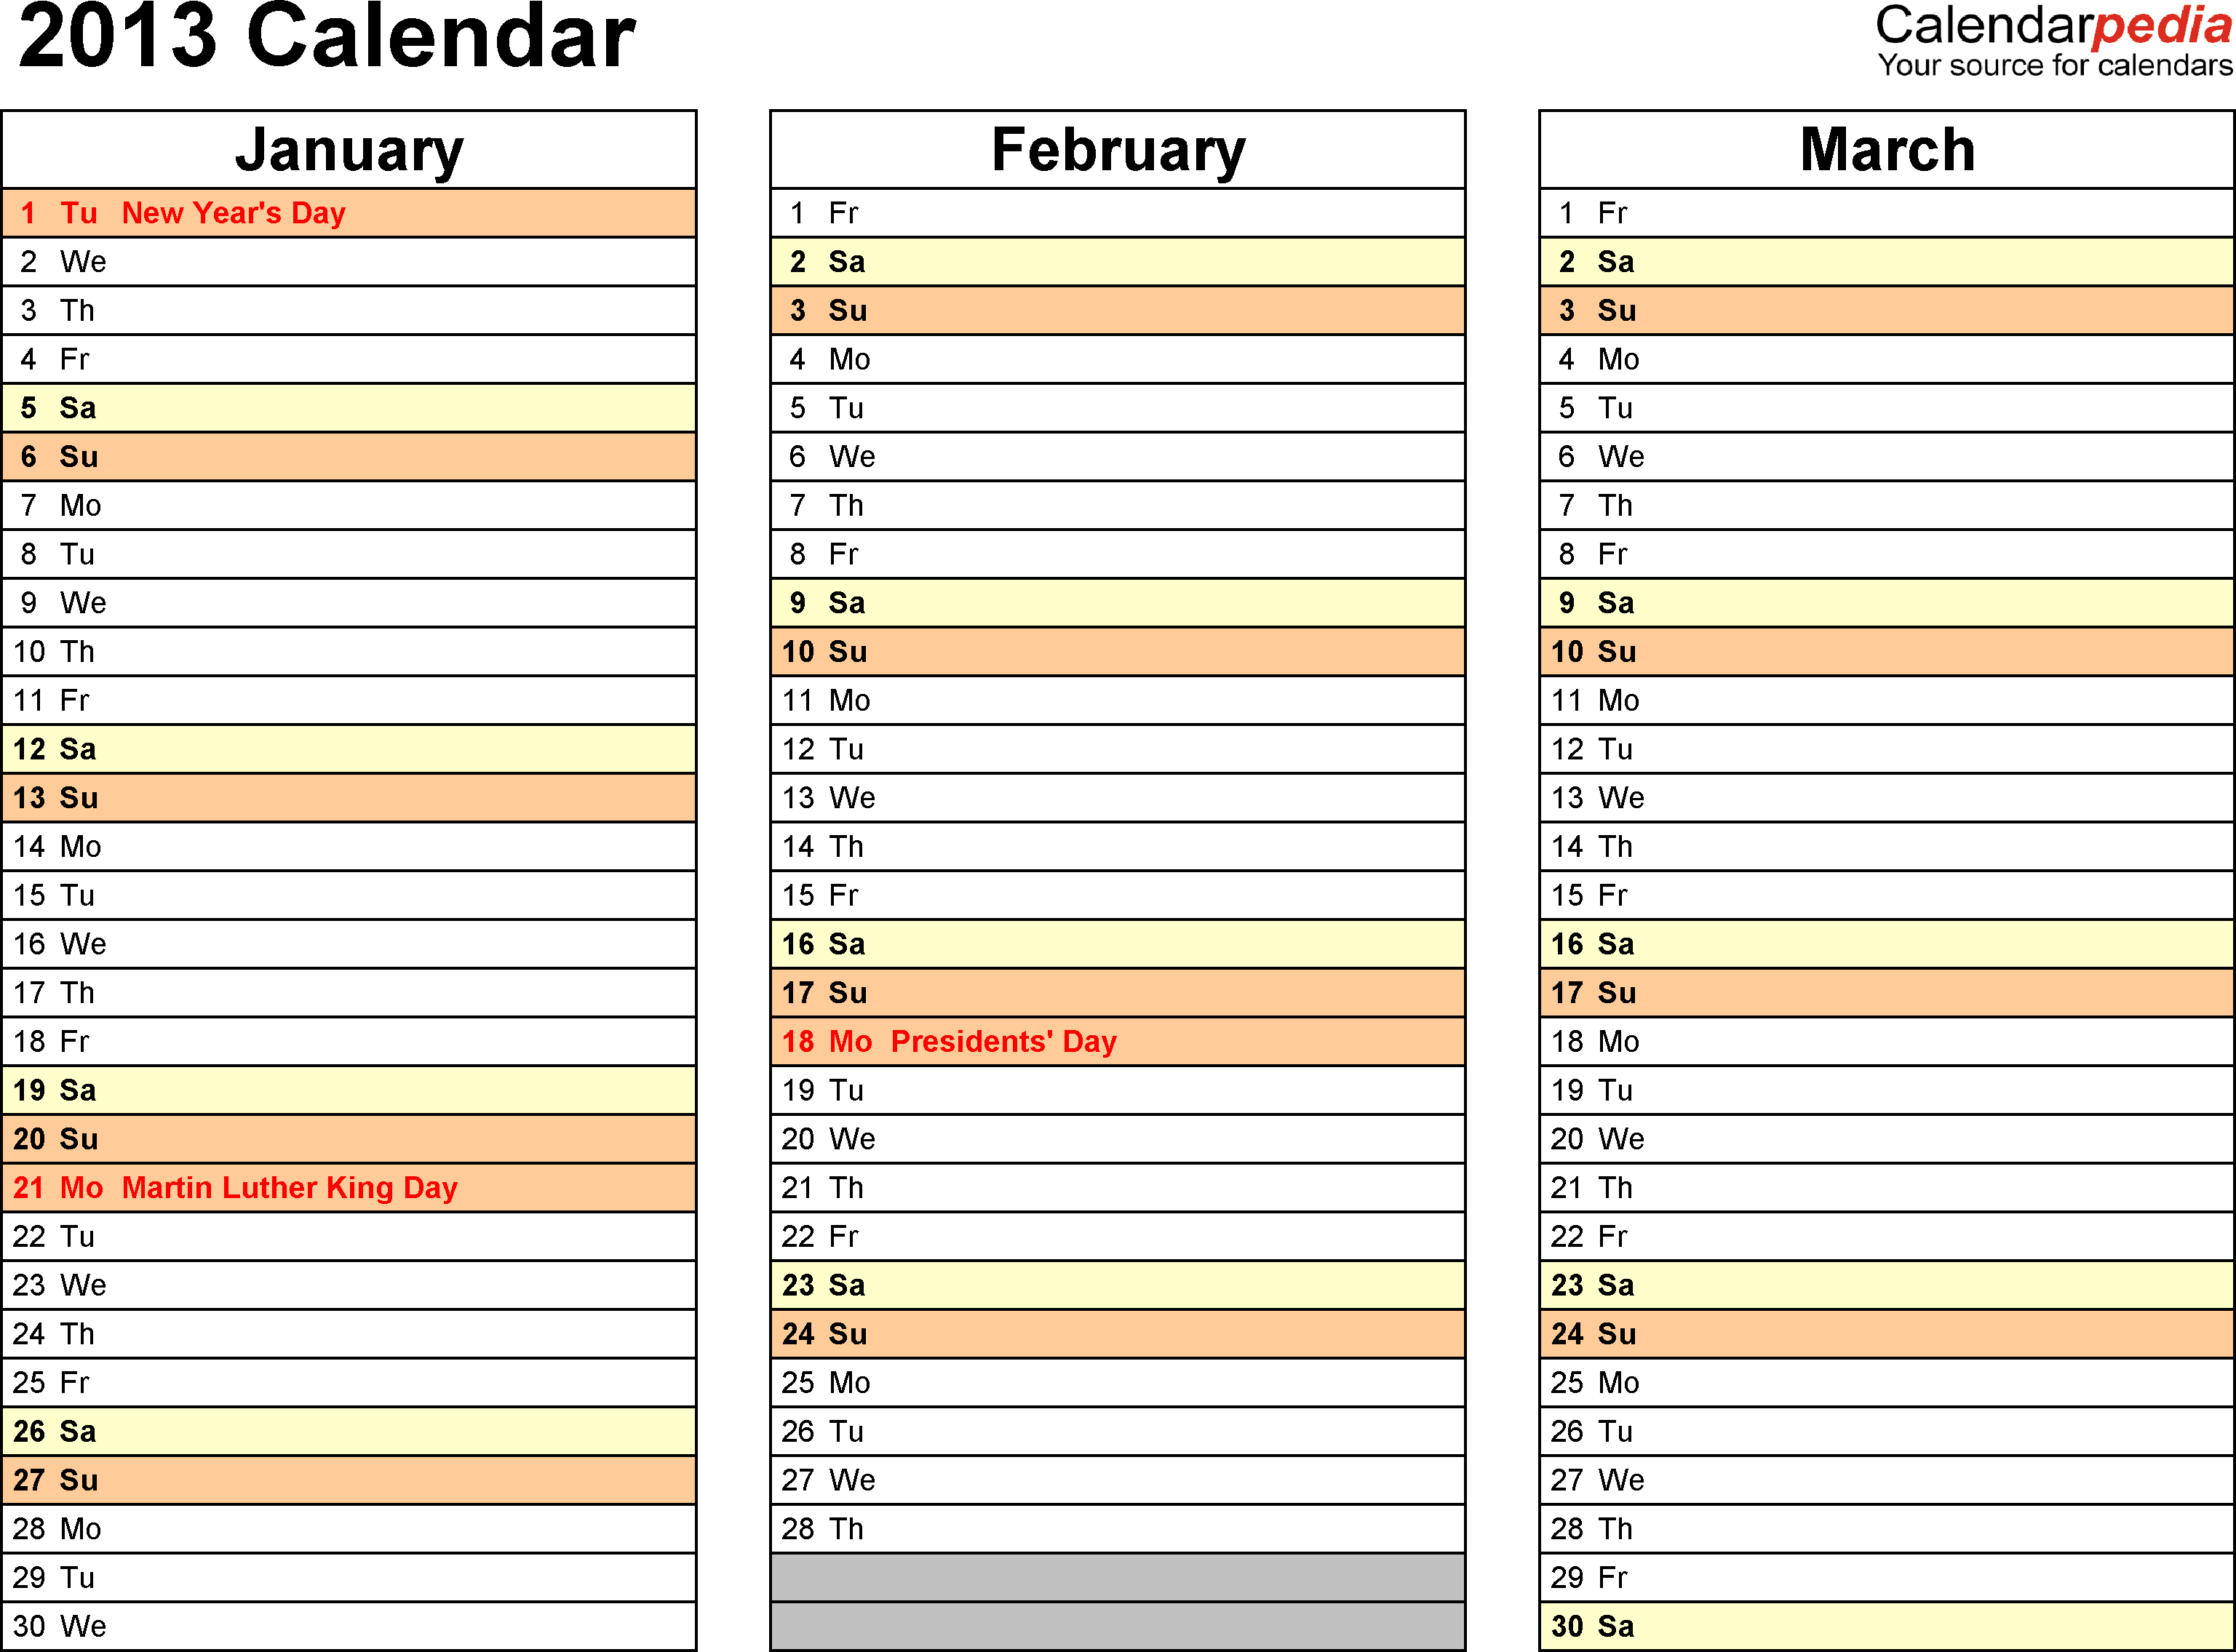 Download PDF template for 2013 calendar template 6: landscape orientation, 4 pages, months horizontally, days vertically